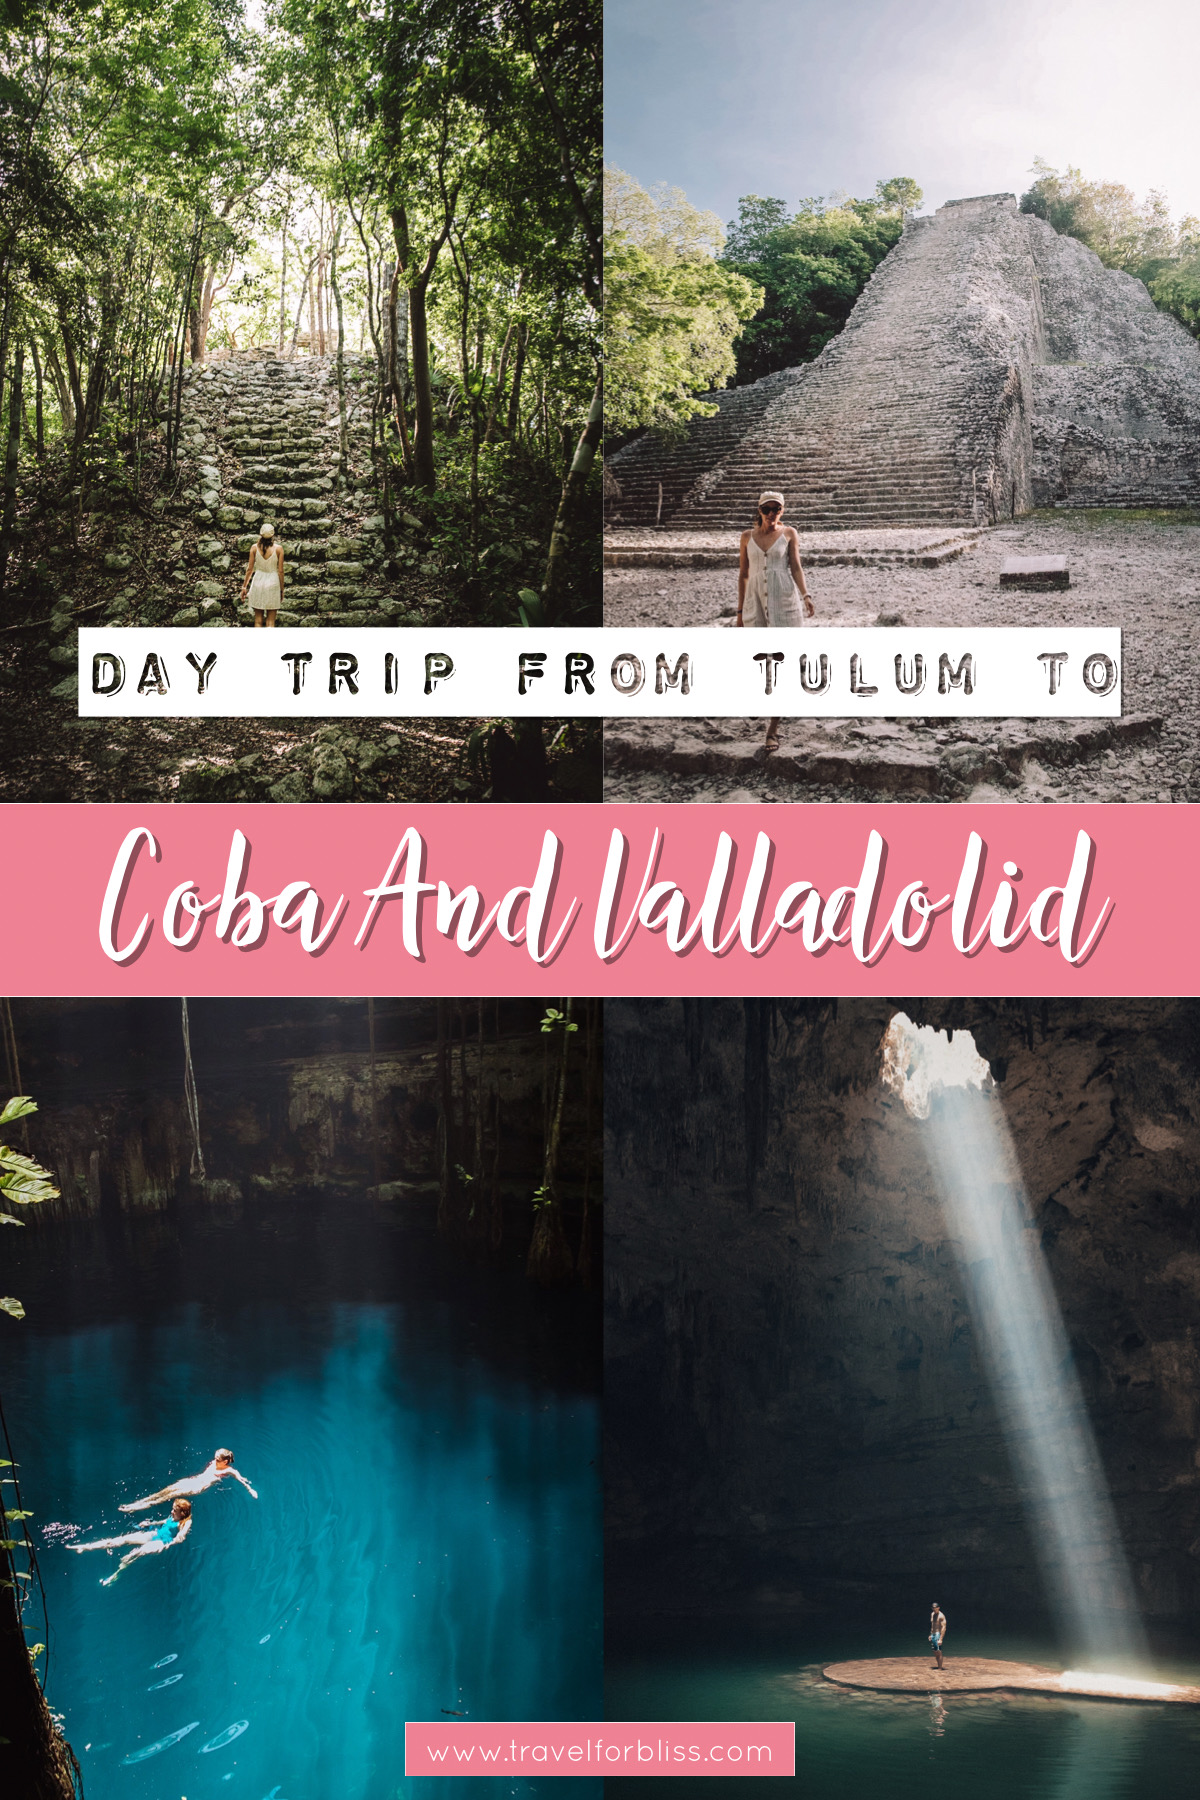 Go Swimming in the best Cenotes on the Yucatan Peninsula near Valladolid. Discover what day trips to do from Tulum. Visit Coba for some of the best Mayan ruins near Tulum. Valladolid is a great day trip for authentic and local Mexico.